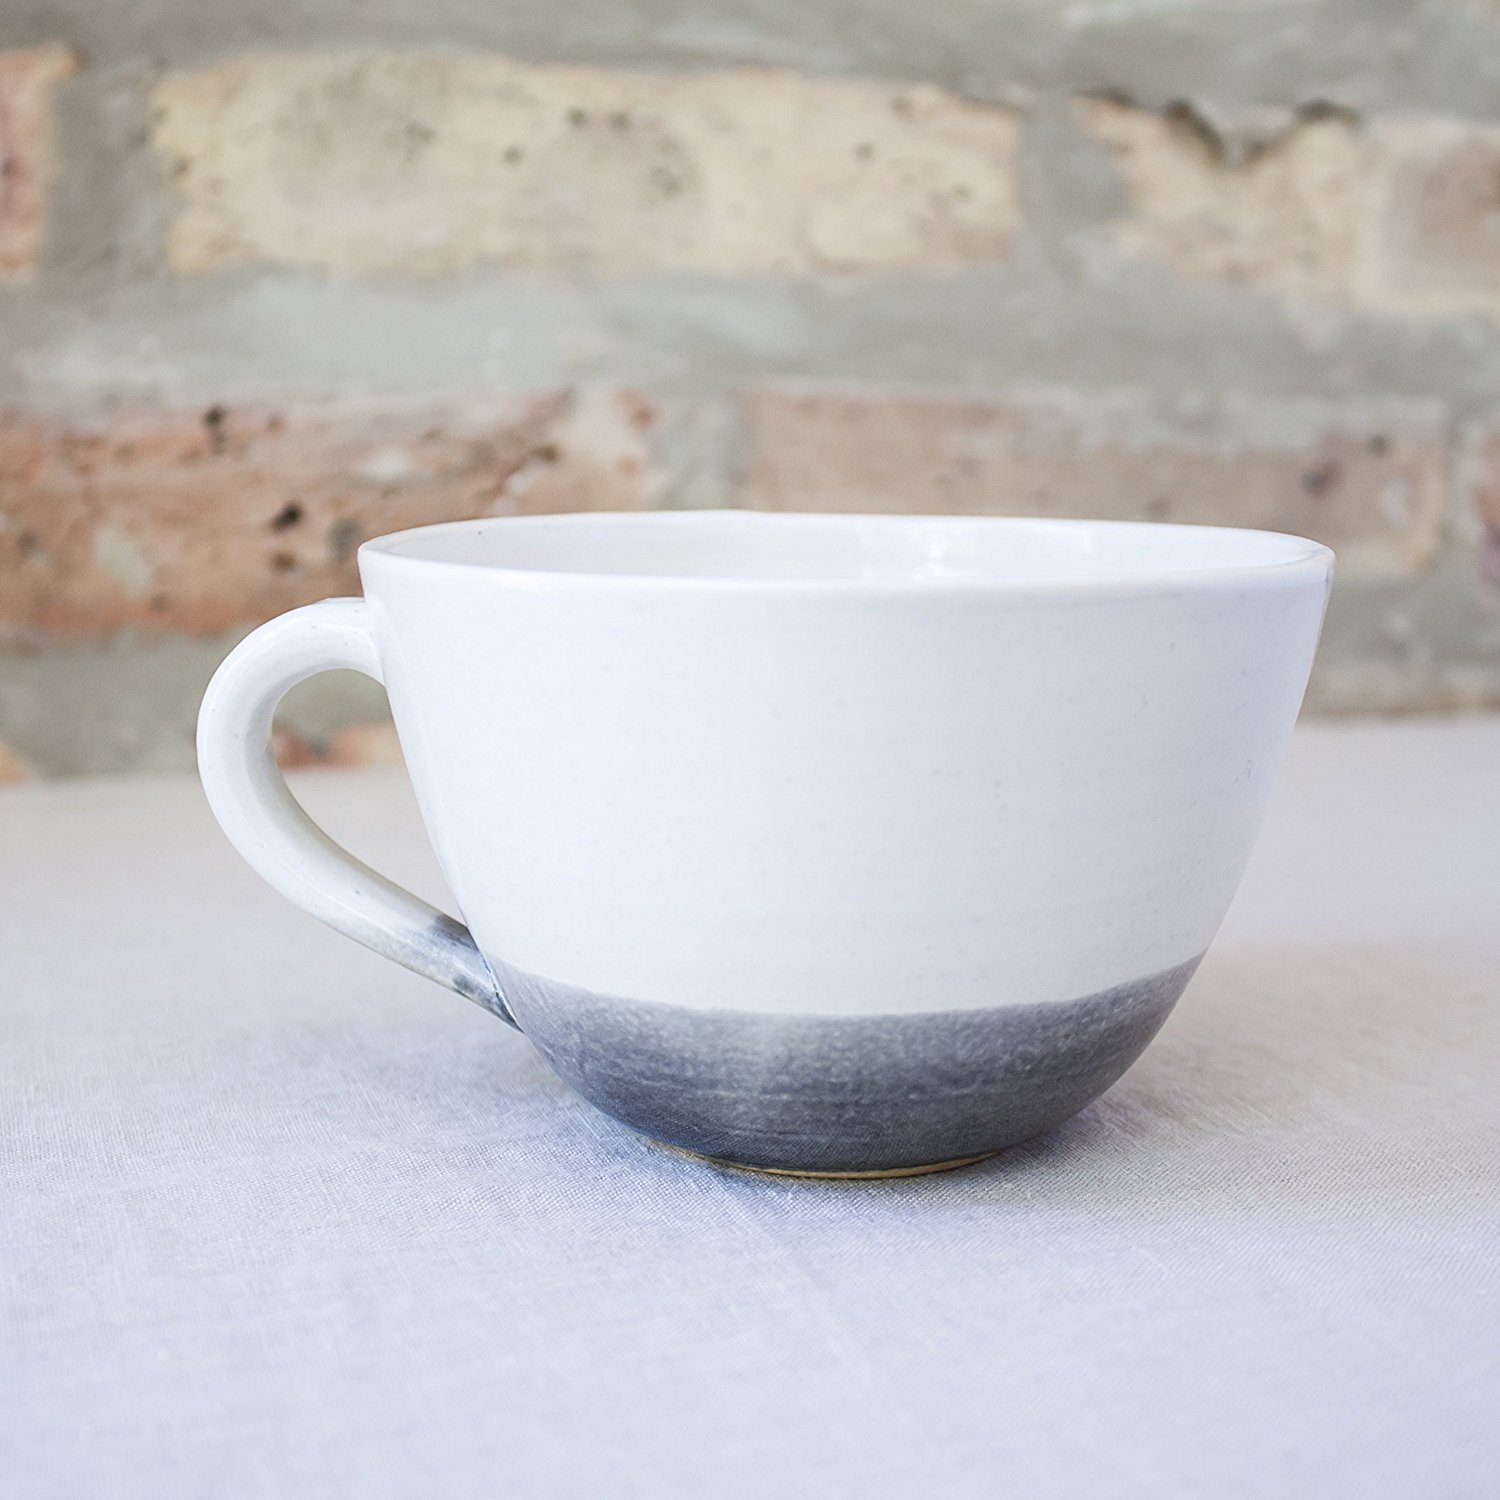 Gray Dipped Ceramic Coffee Cup by Barombi Studios